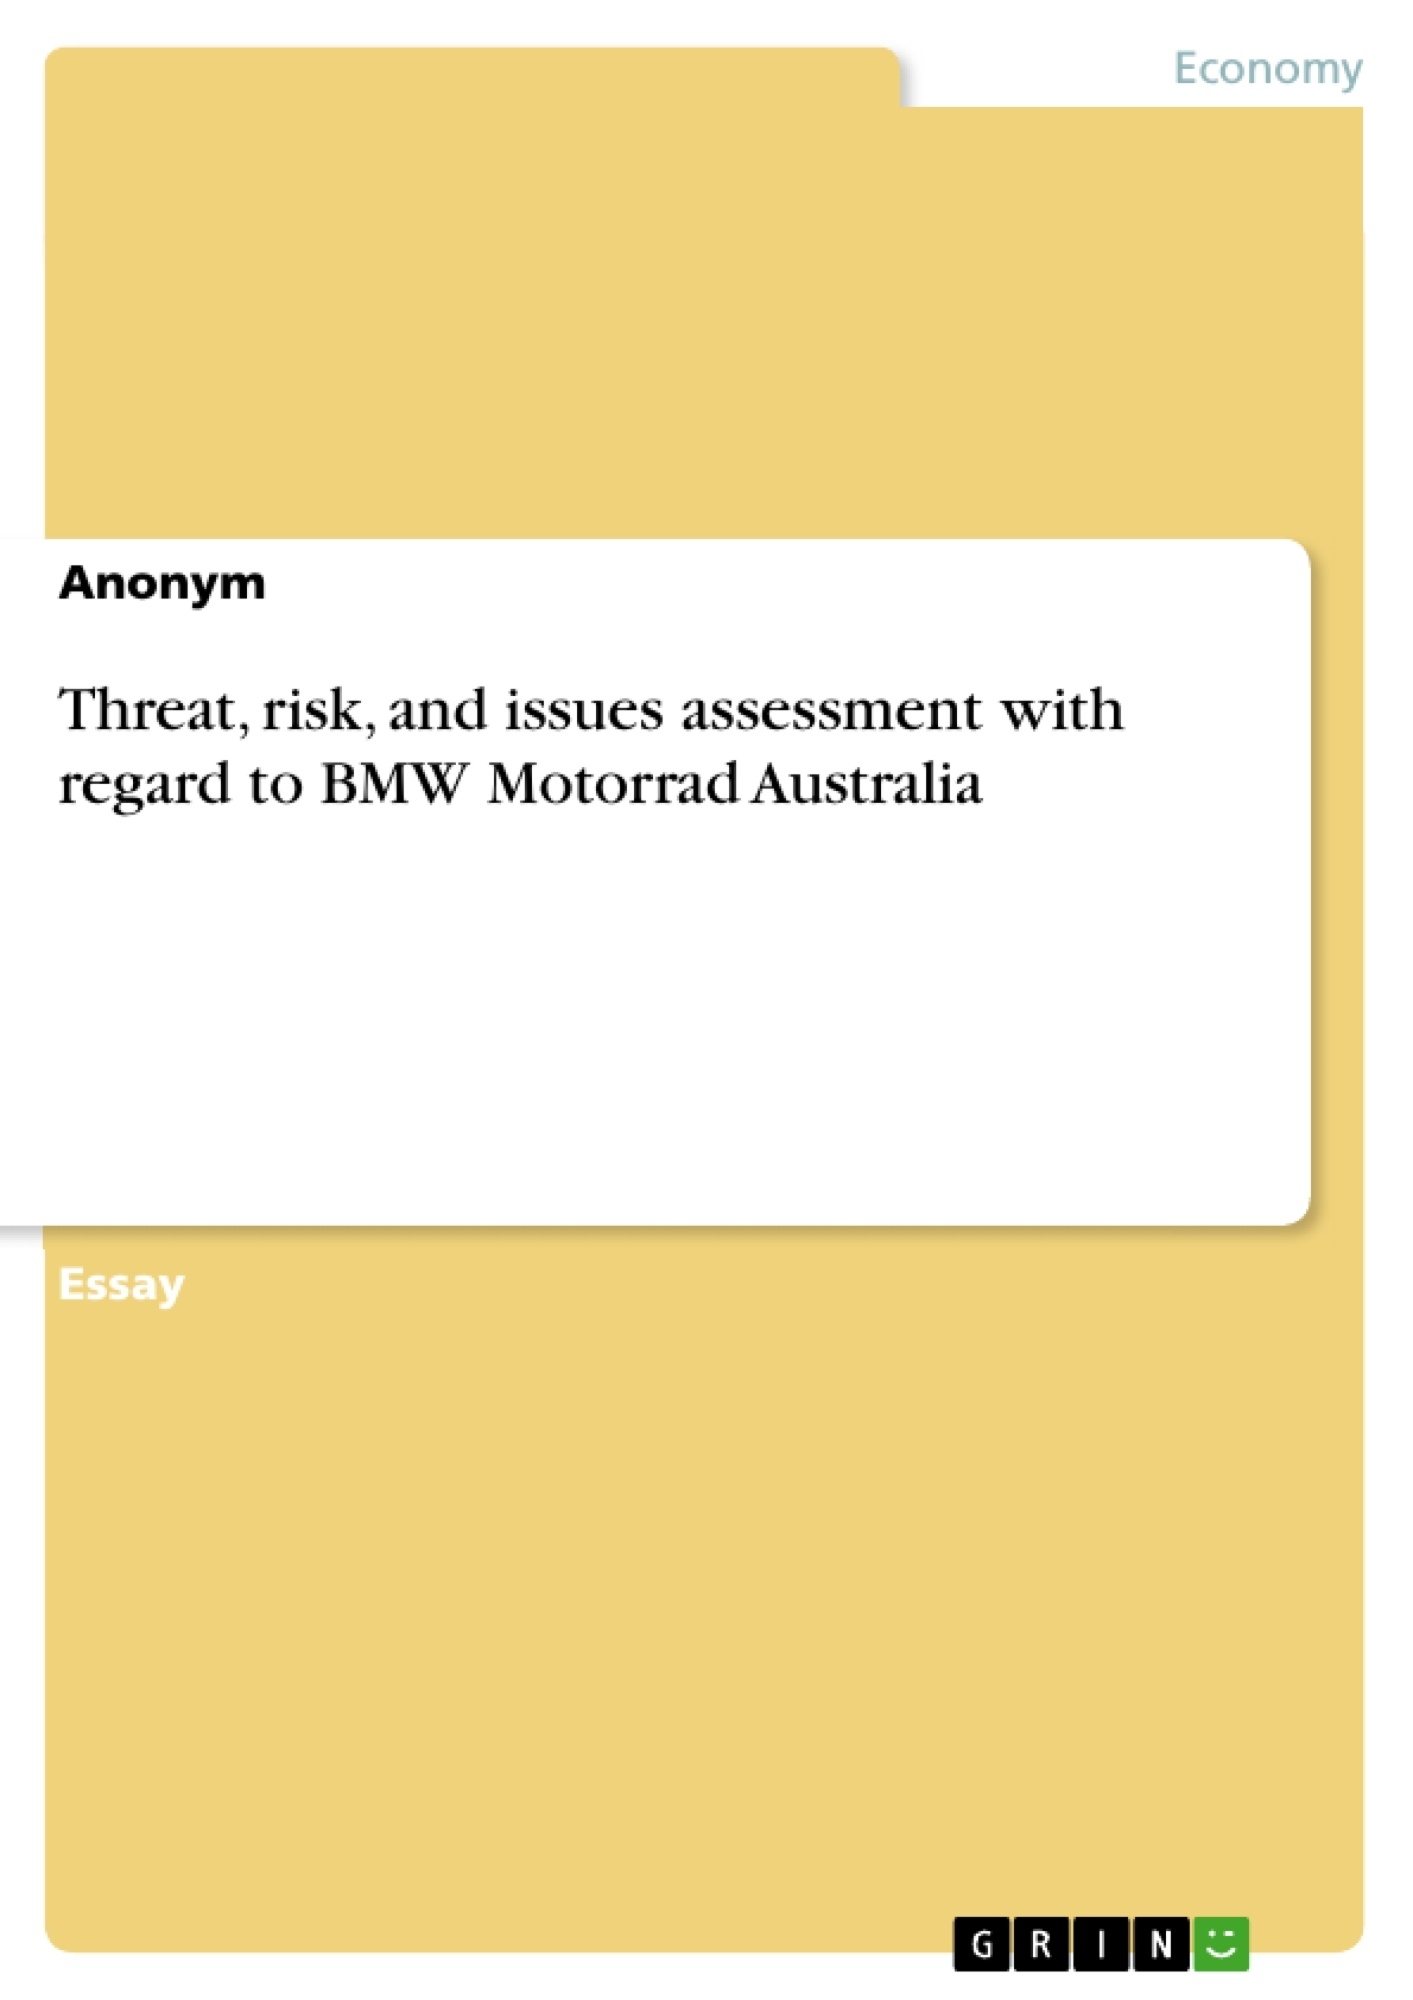 Title: Threat, risk, and issues assessment with regard to BMW Motorrad Australia